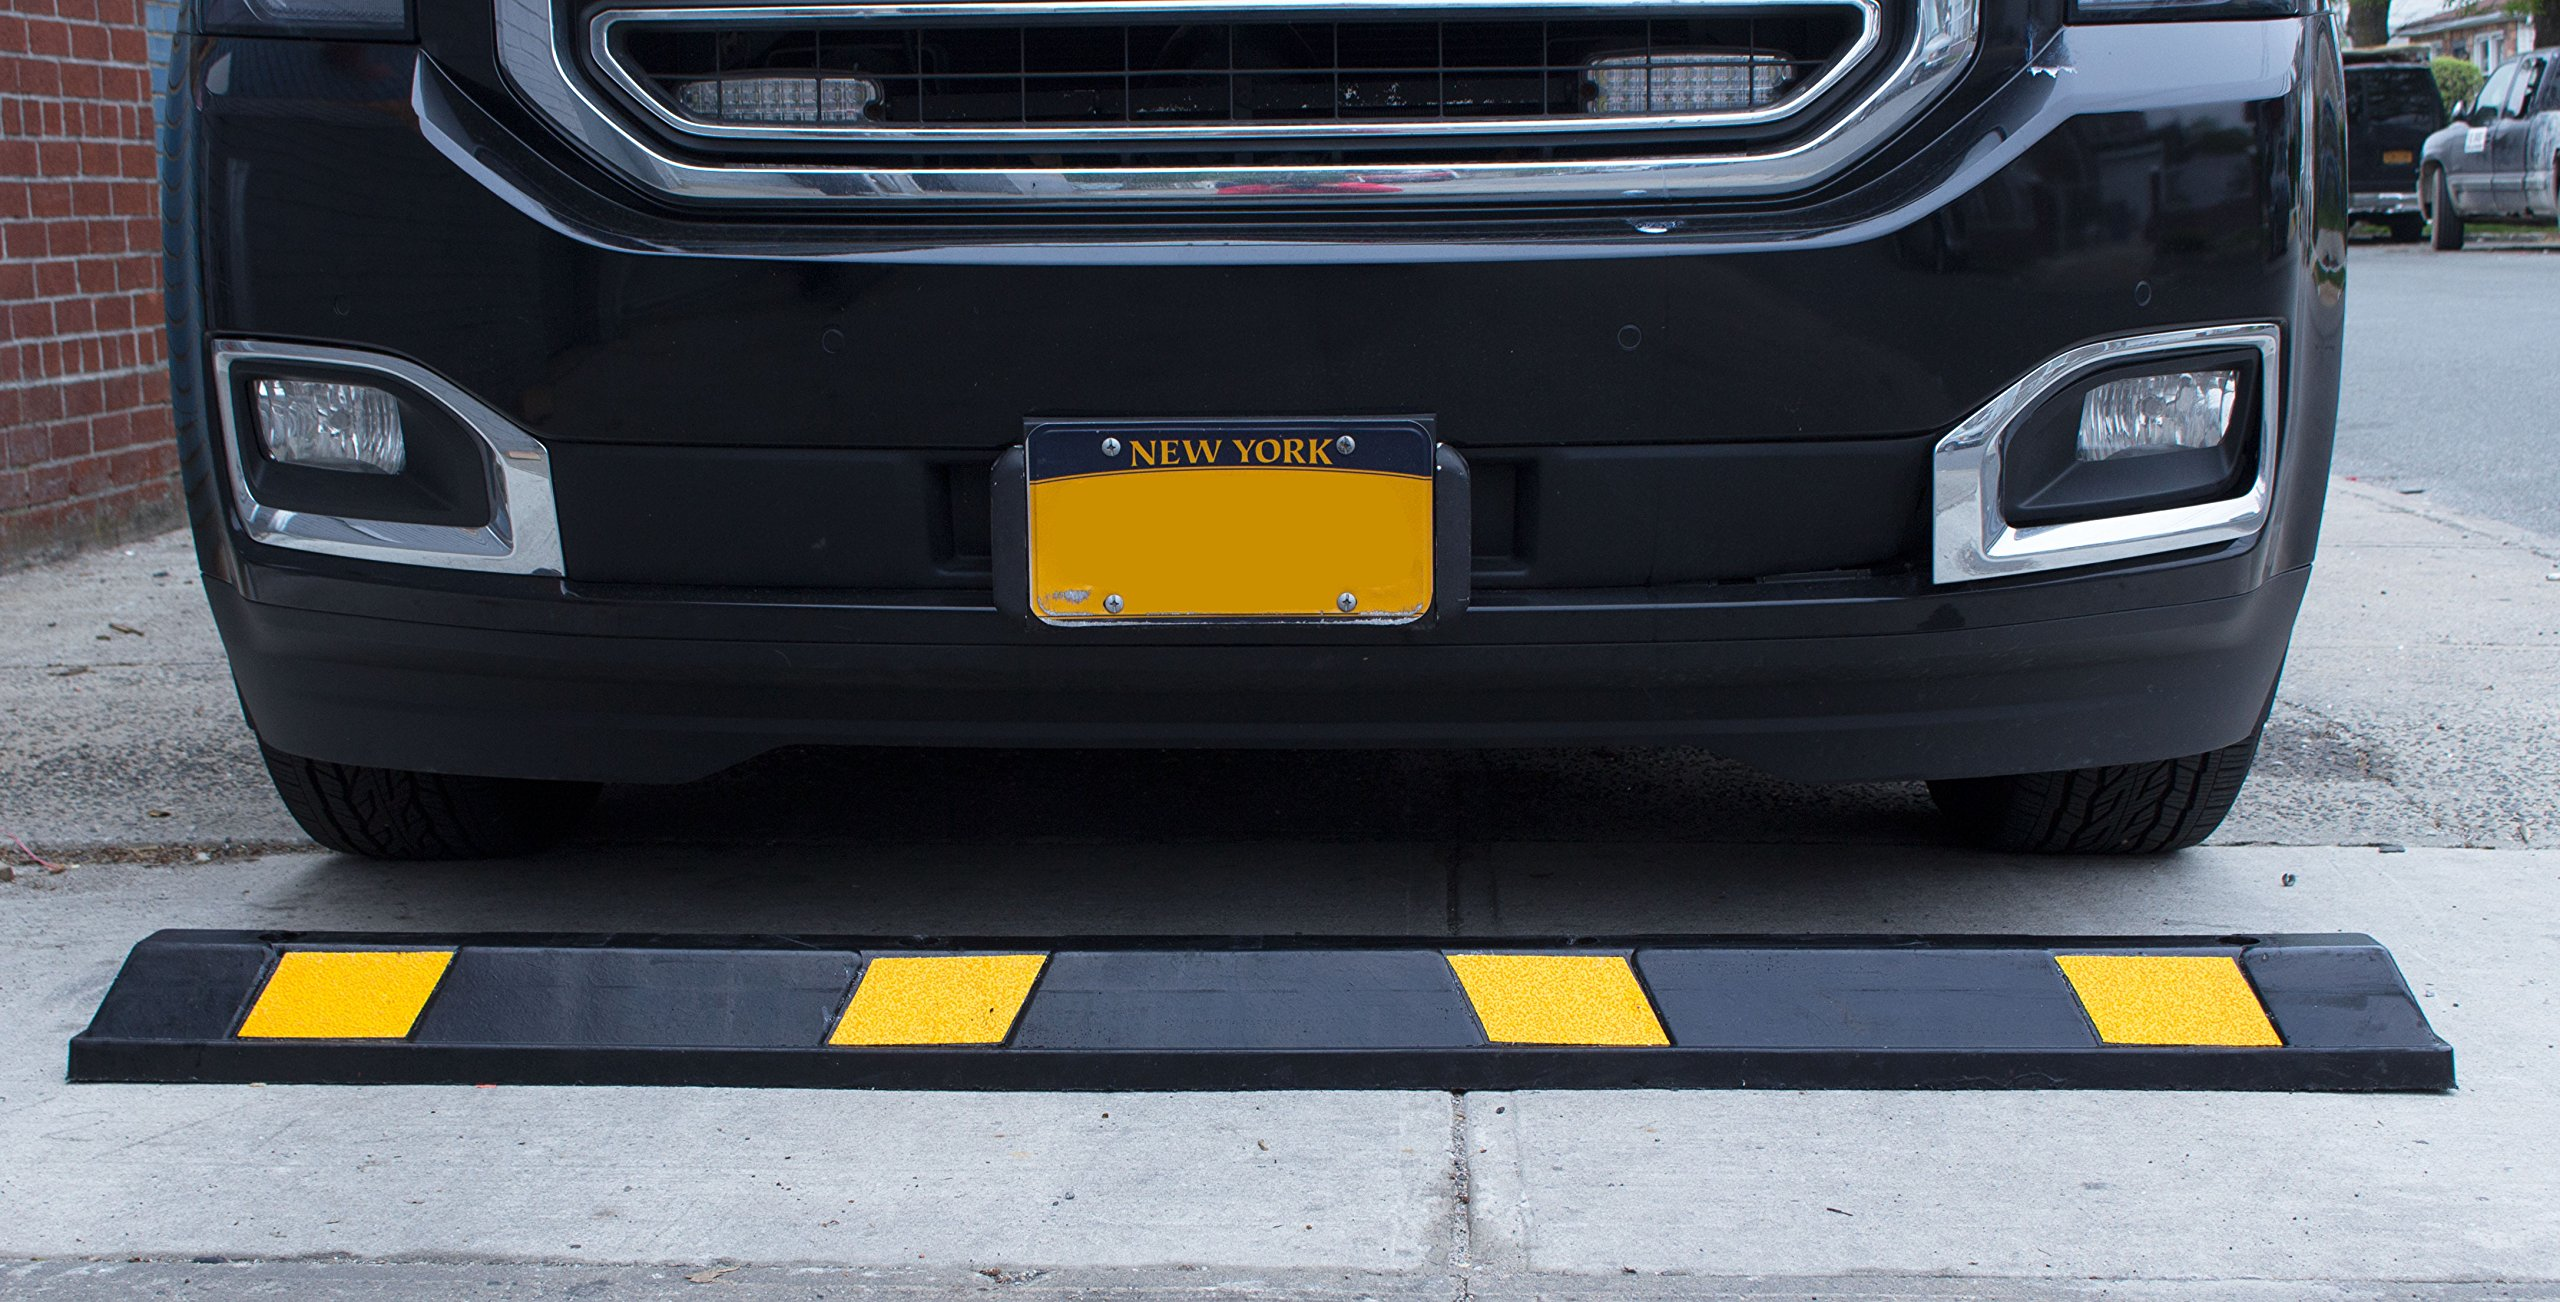 RK-BP72 Heavy Duty Rubber Parking Curb, Parking Block, 72 -Inch for Car, Truck, RV and Trailer Stop Aid by RK (Image #4)